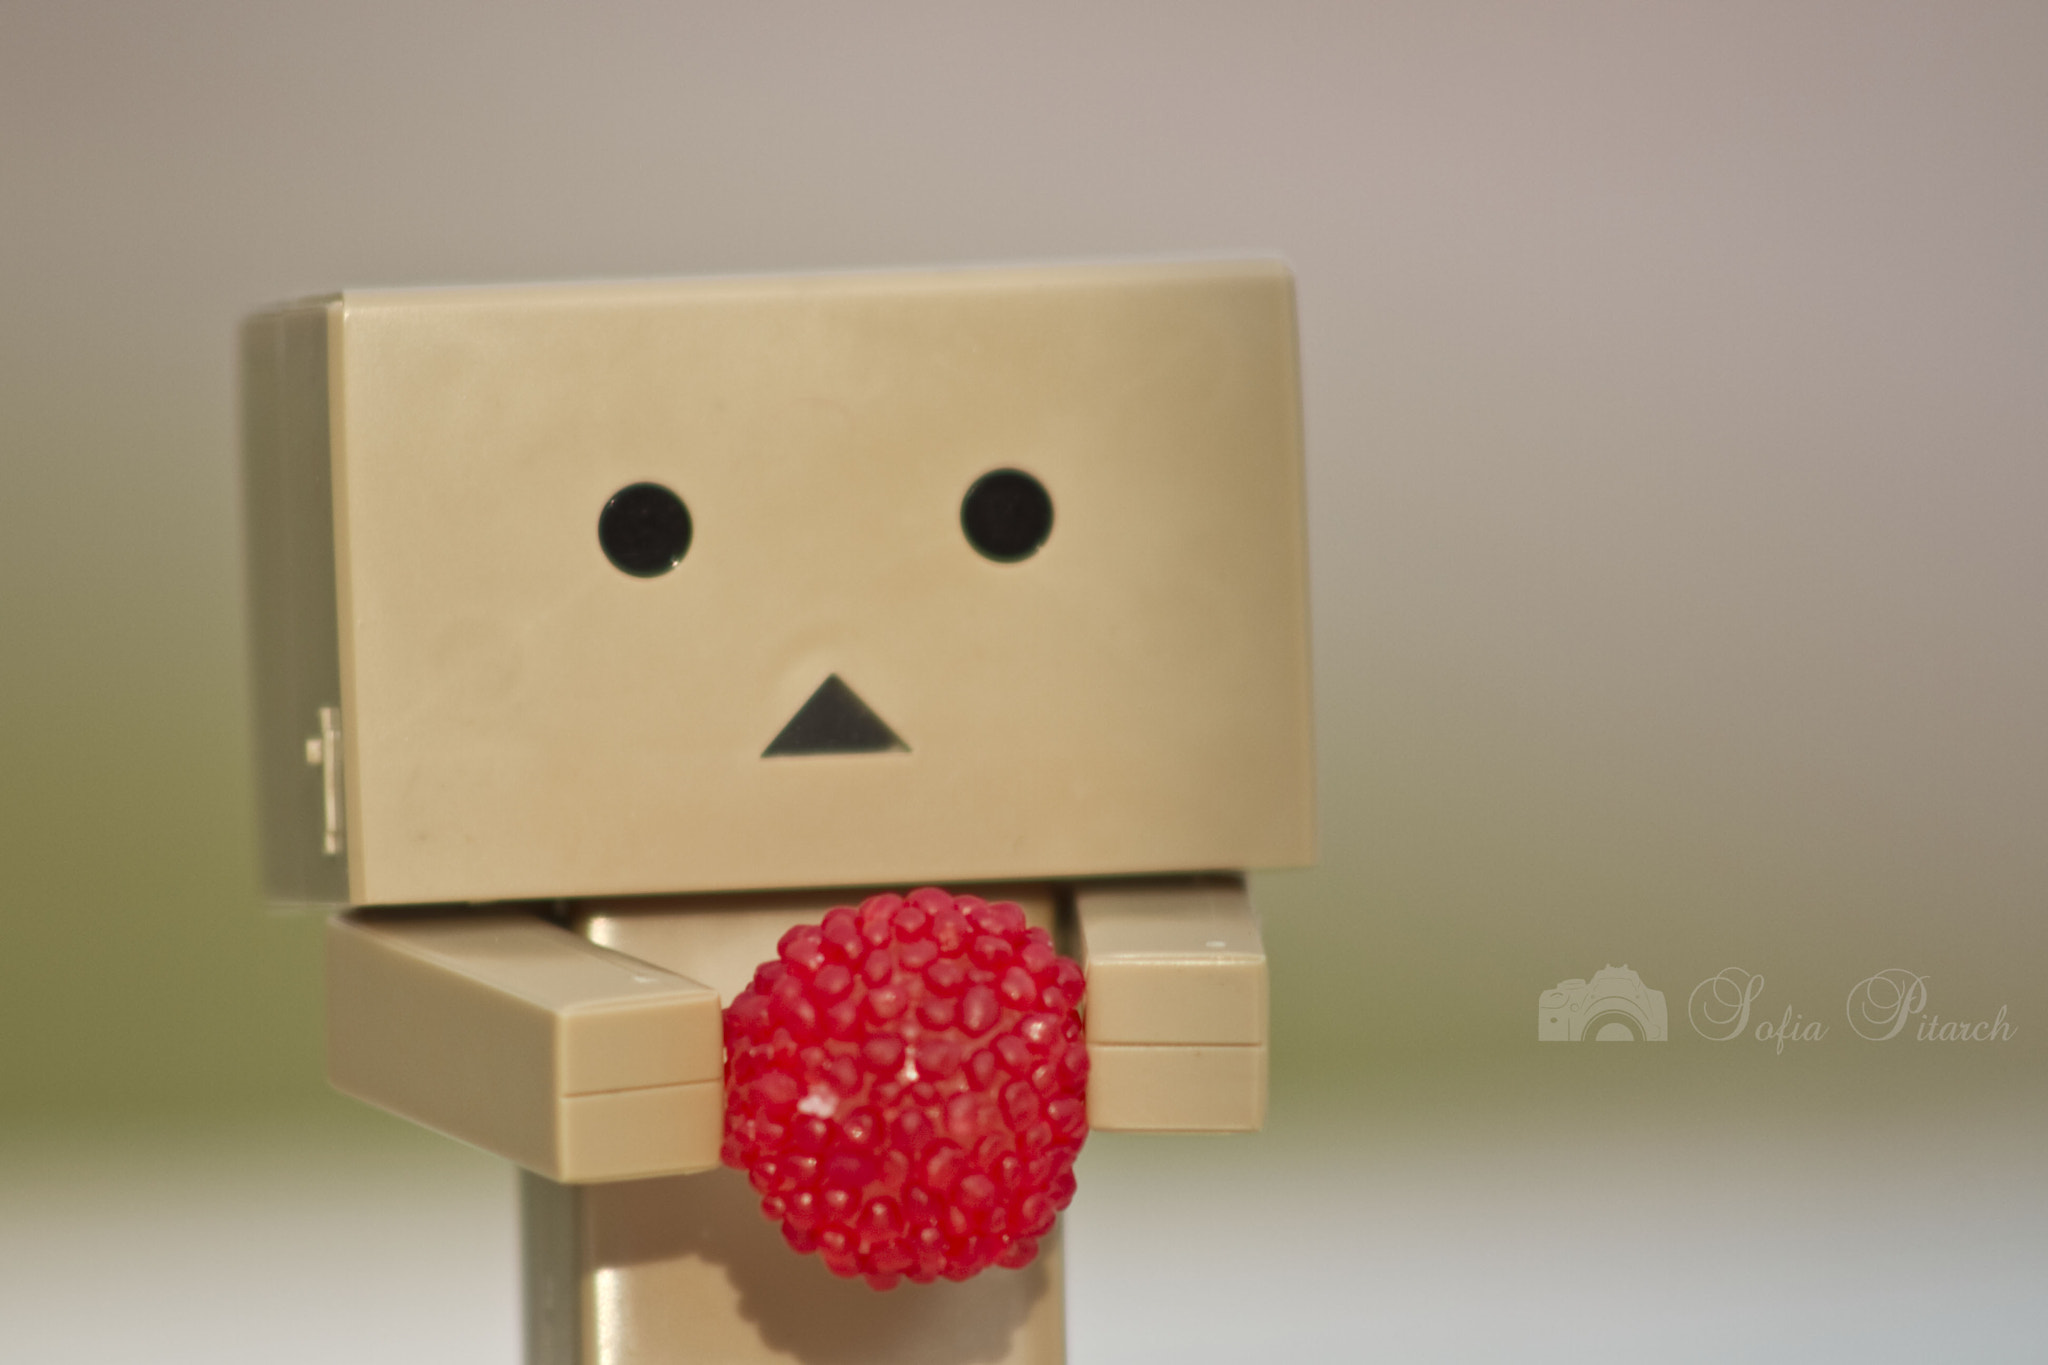 Photograph Hoy he conocido a Danbo by Sofía Pitarch on 500px